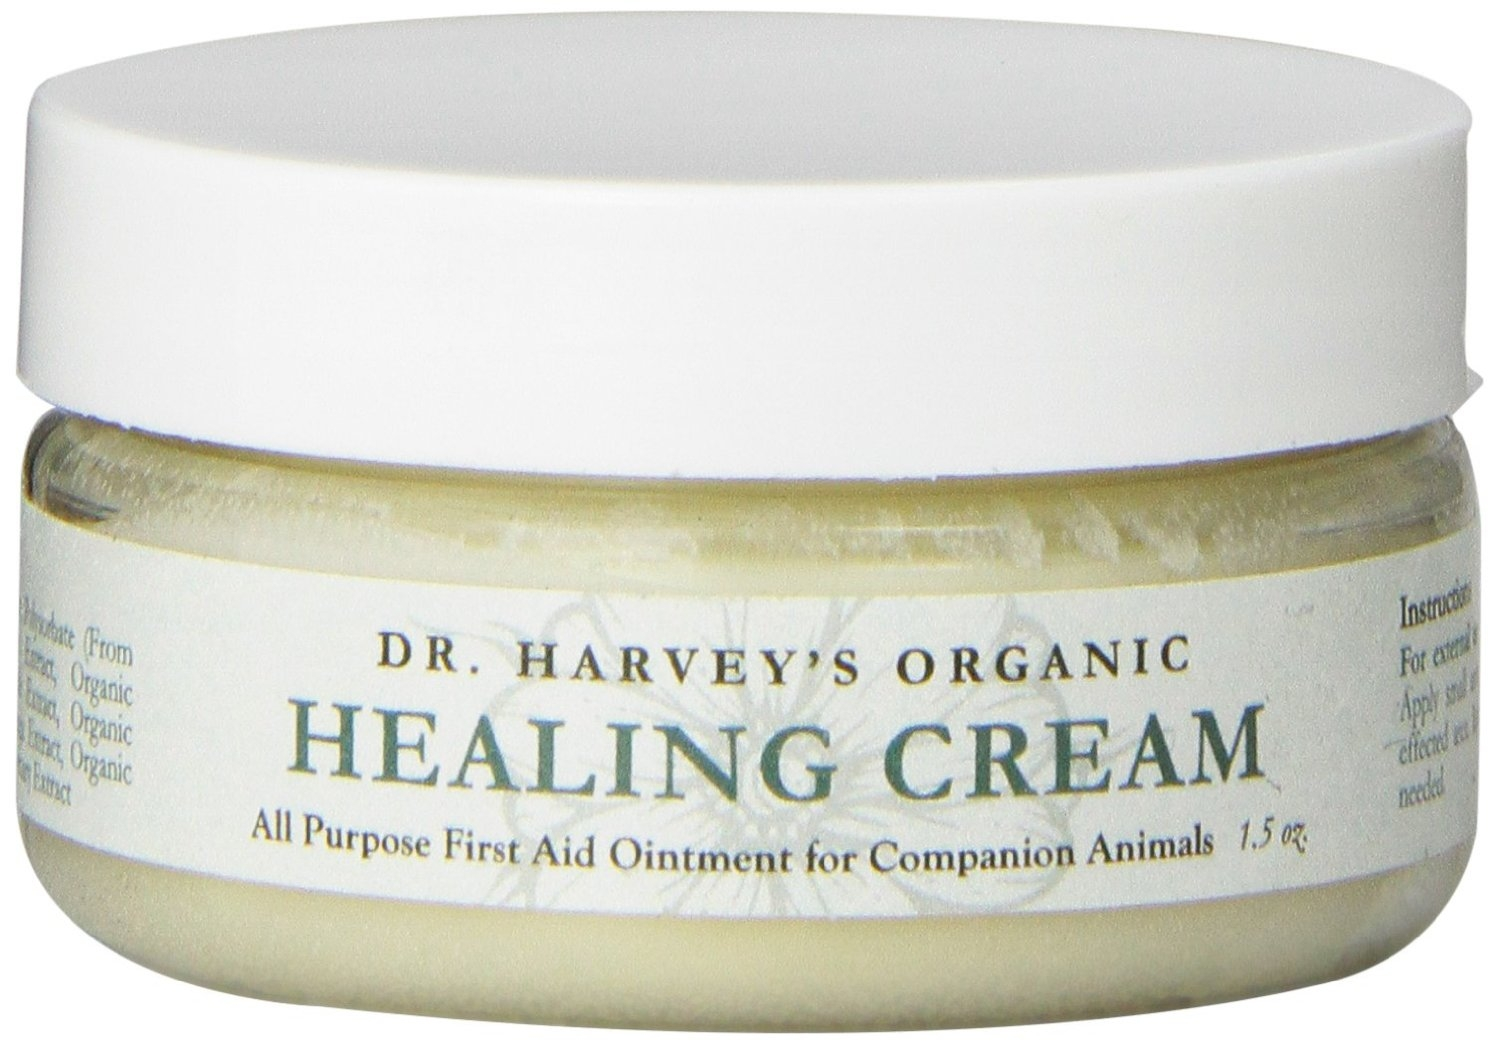 Dr. Harvey's Organic Healing Cream - 1.5oz Jar